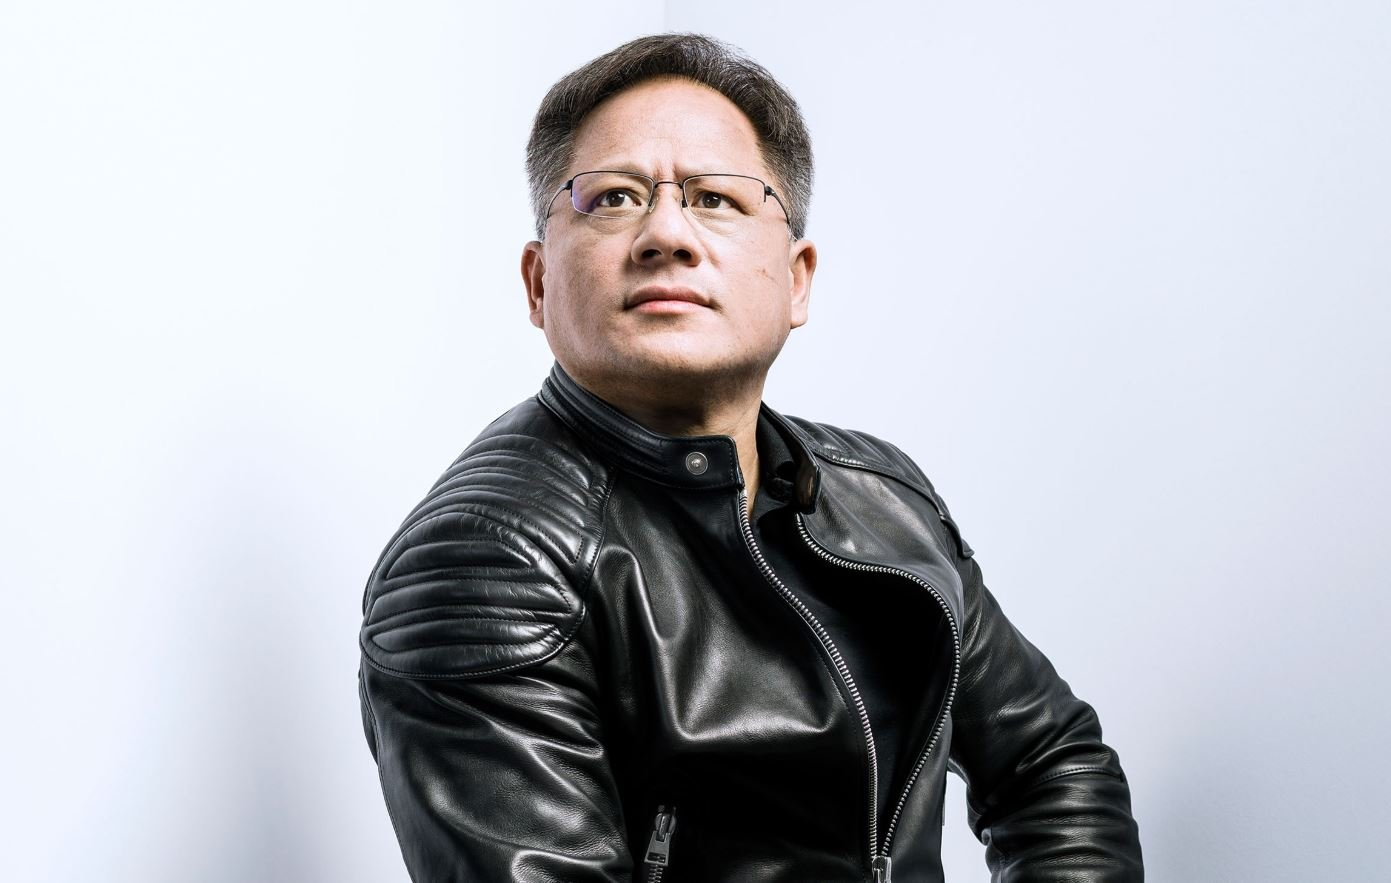 Nvidia S Jensen Huang Shows No Chill When Asked About Amd Shacknews